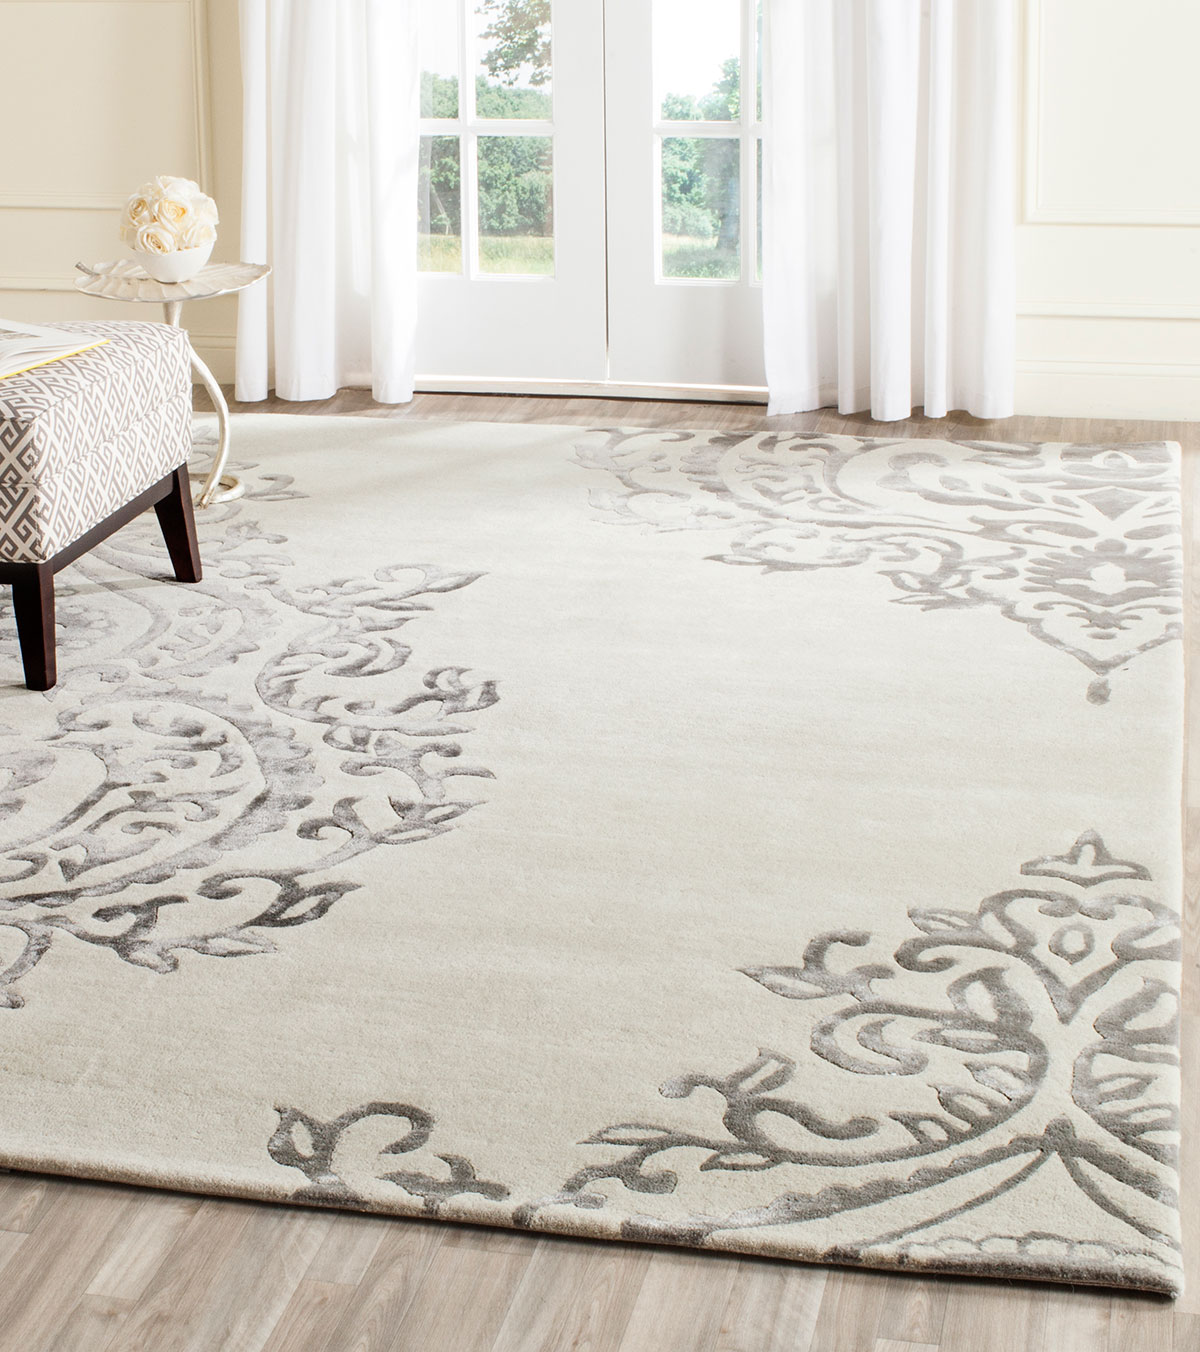 Alluring Marrakesh Shag Rug Idea | Gorgeous Shagy Rugs